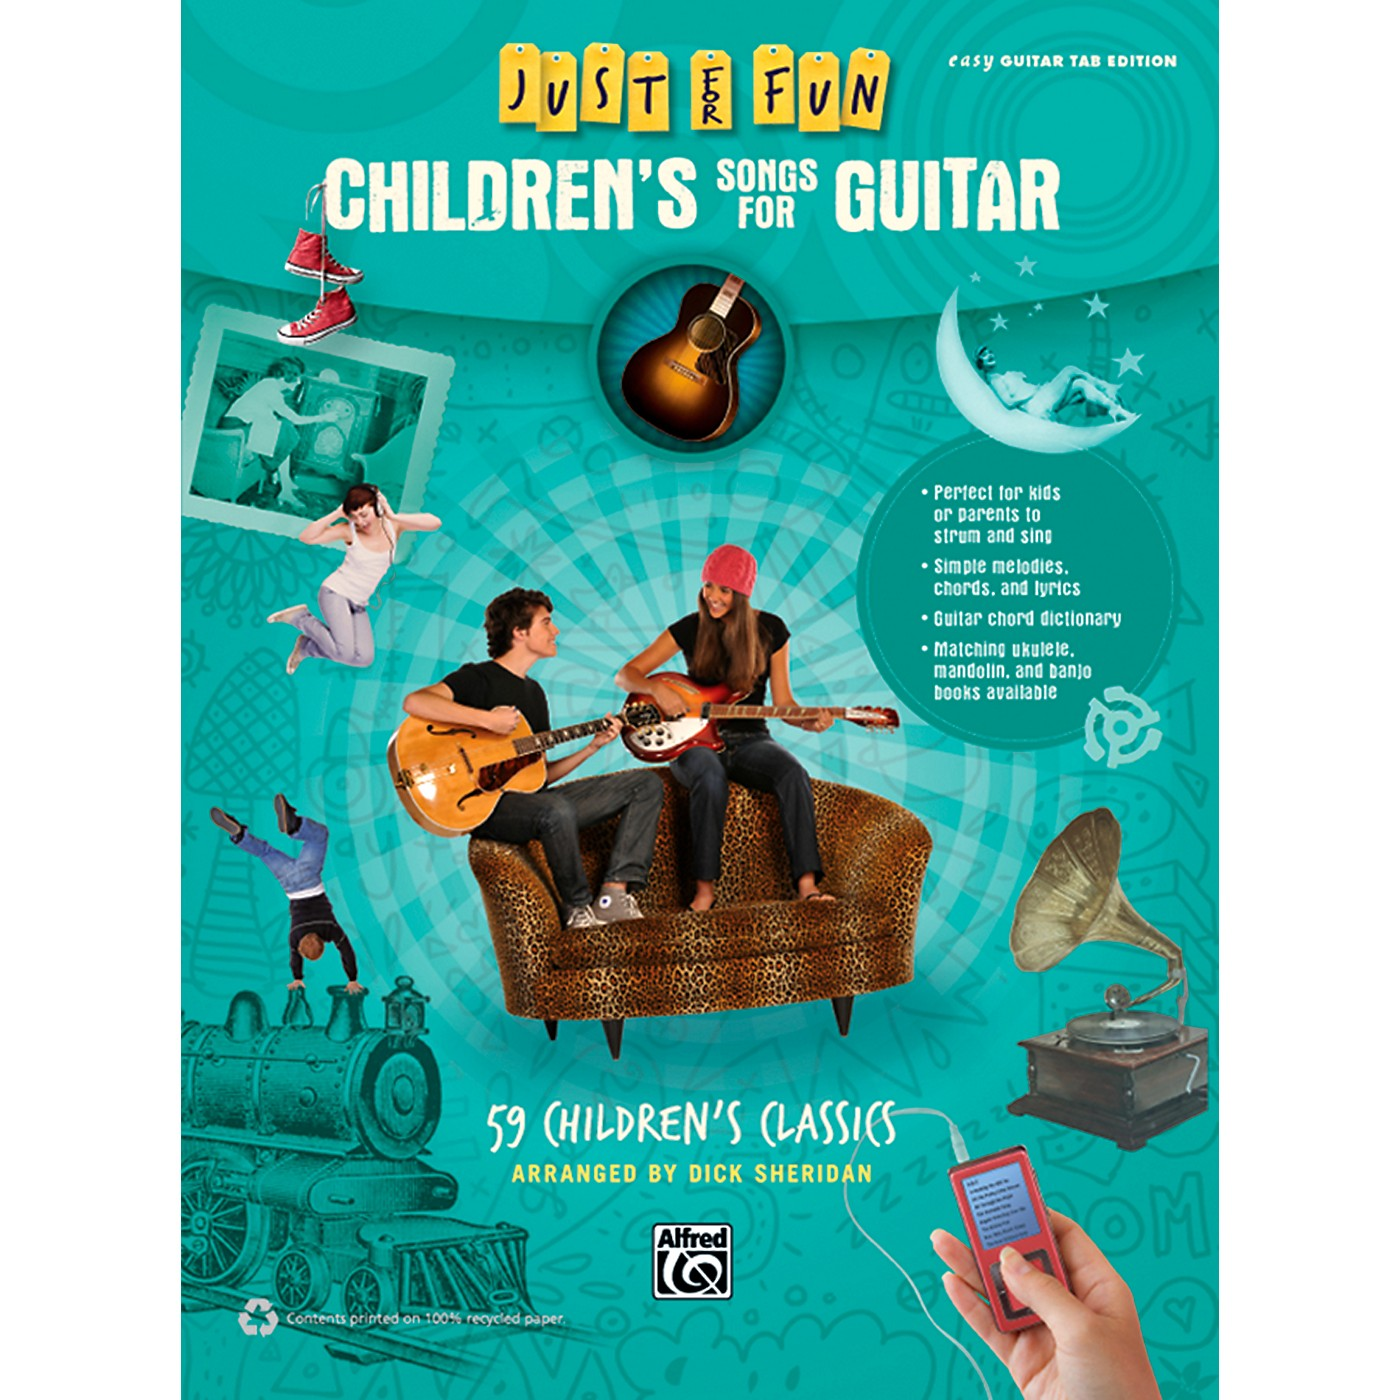 Alfred Just for Fun Children's Songs for Guitar Easy Guitar TAB Book thumbnail